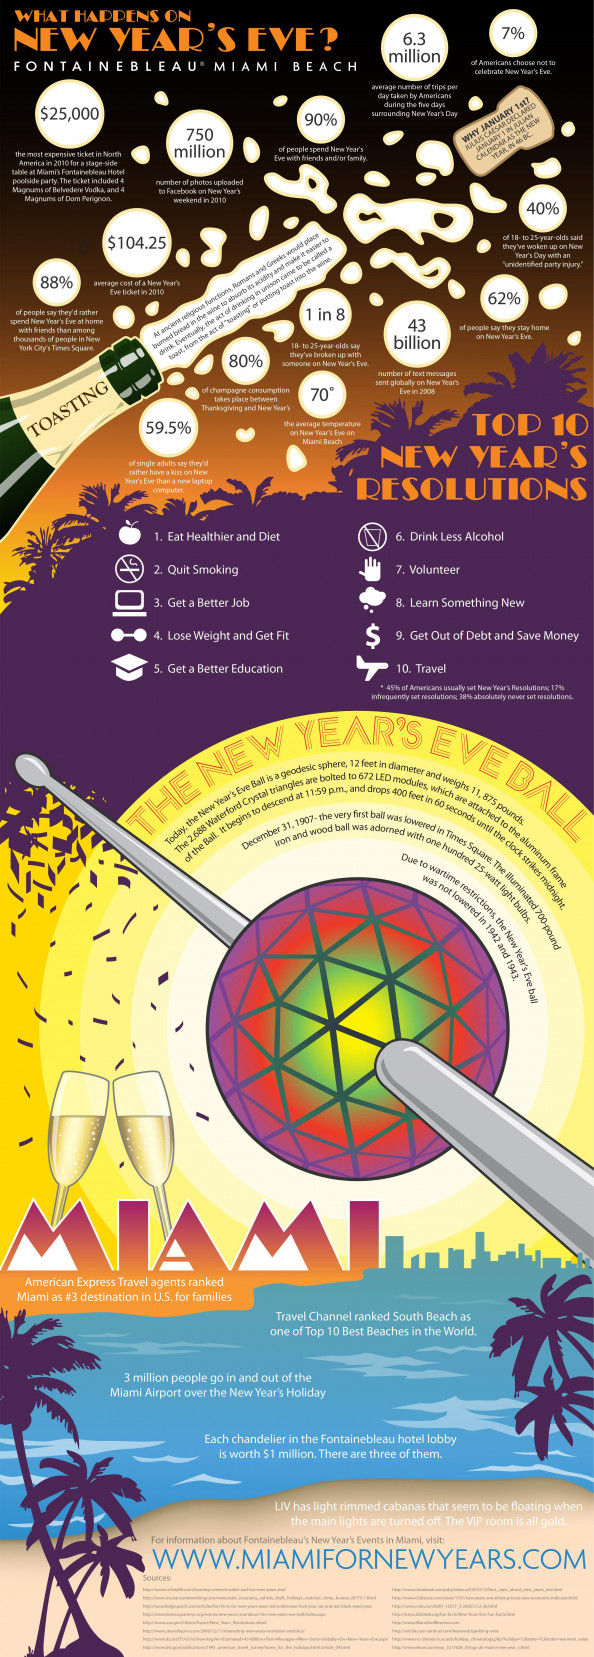 Fontainebleau is 2012's Ultimate New Year's Eve Destination ... Infographic